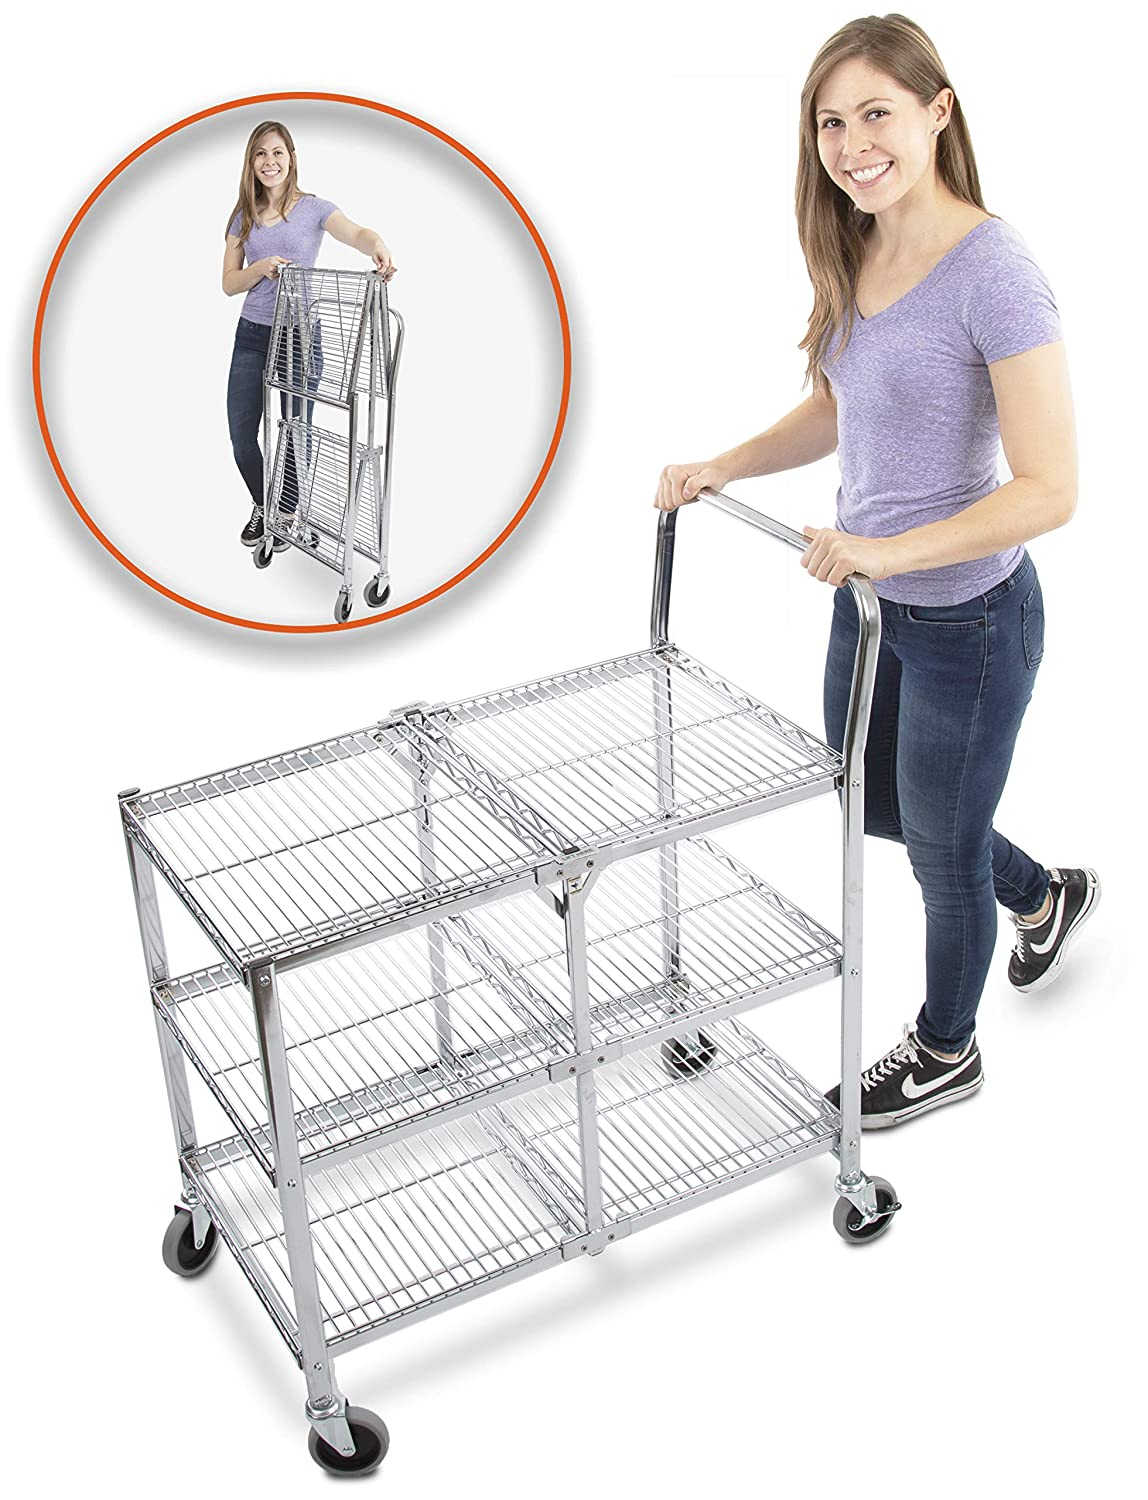 Original Tubstr – Collapsible Wire Cart - 3 Shelf Wire Utility Cart Provides Convenient Transport, Holds 300 Pounds and Folds Up for Storage - Commercial Grade